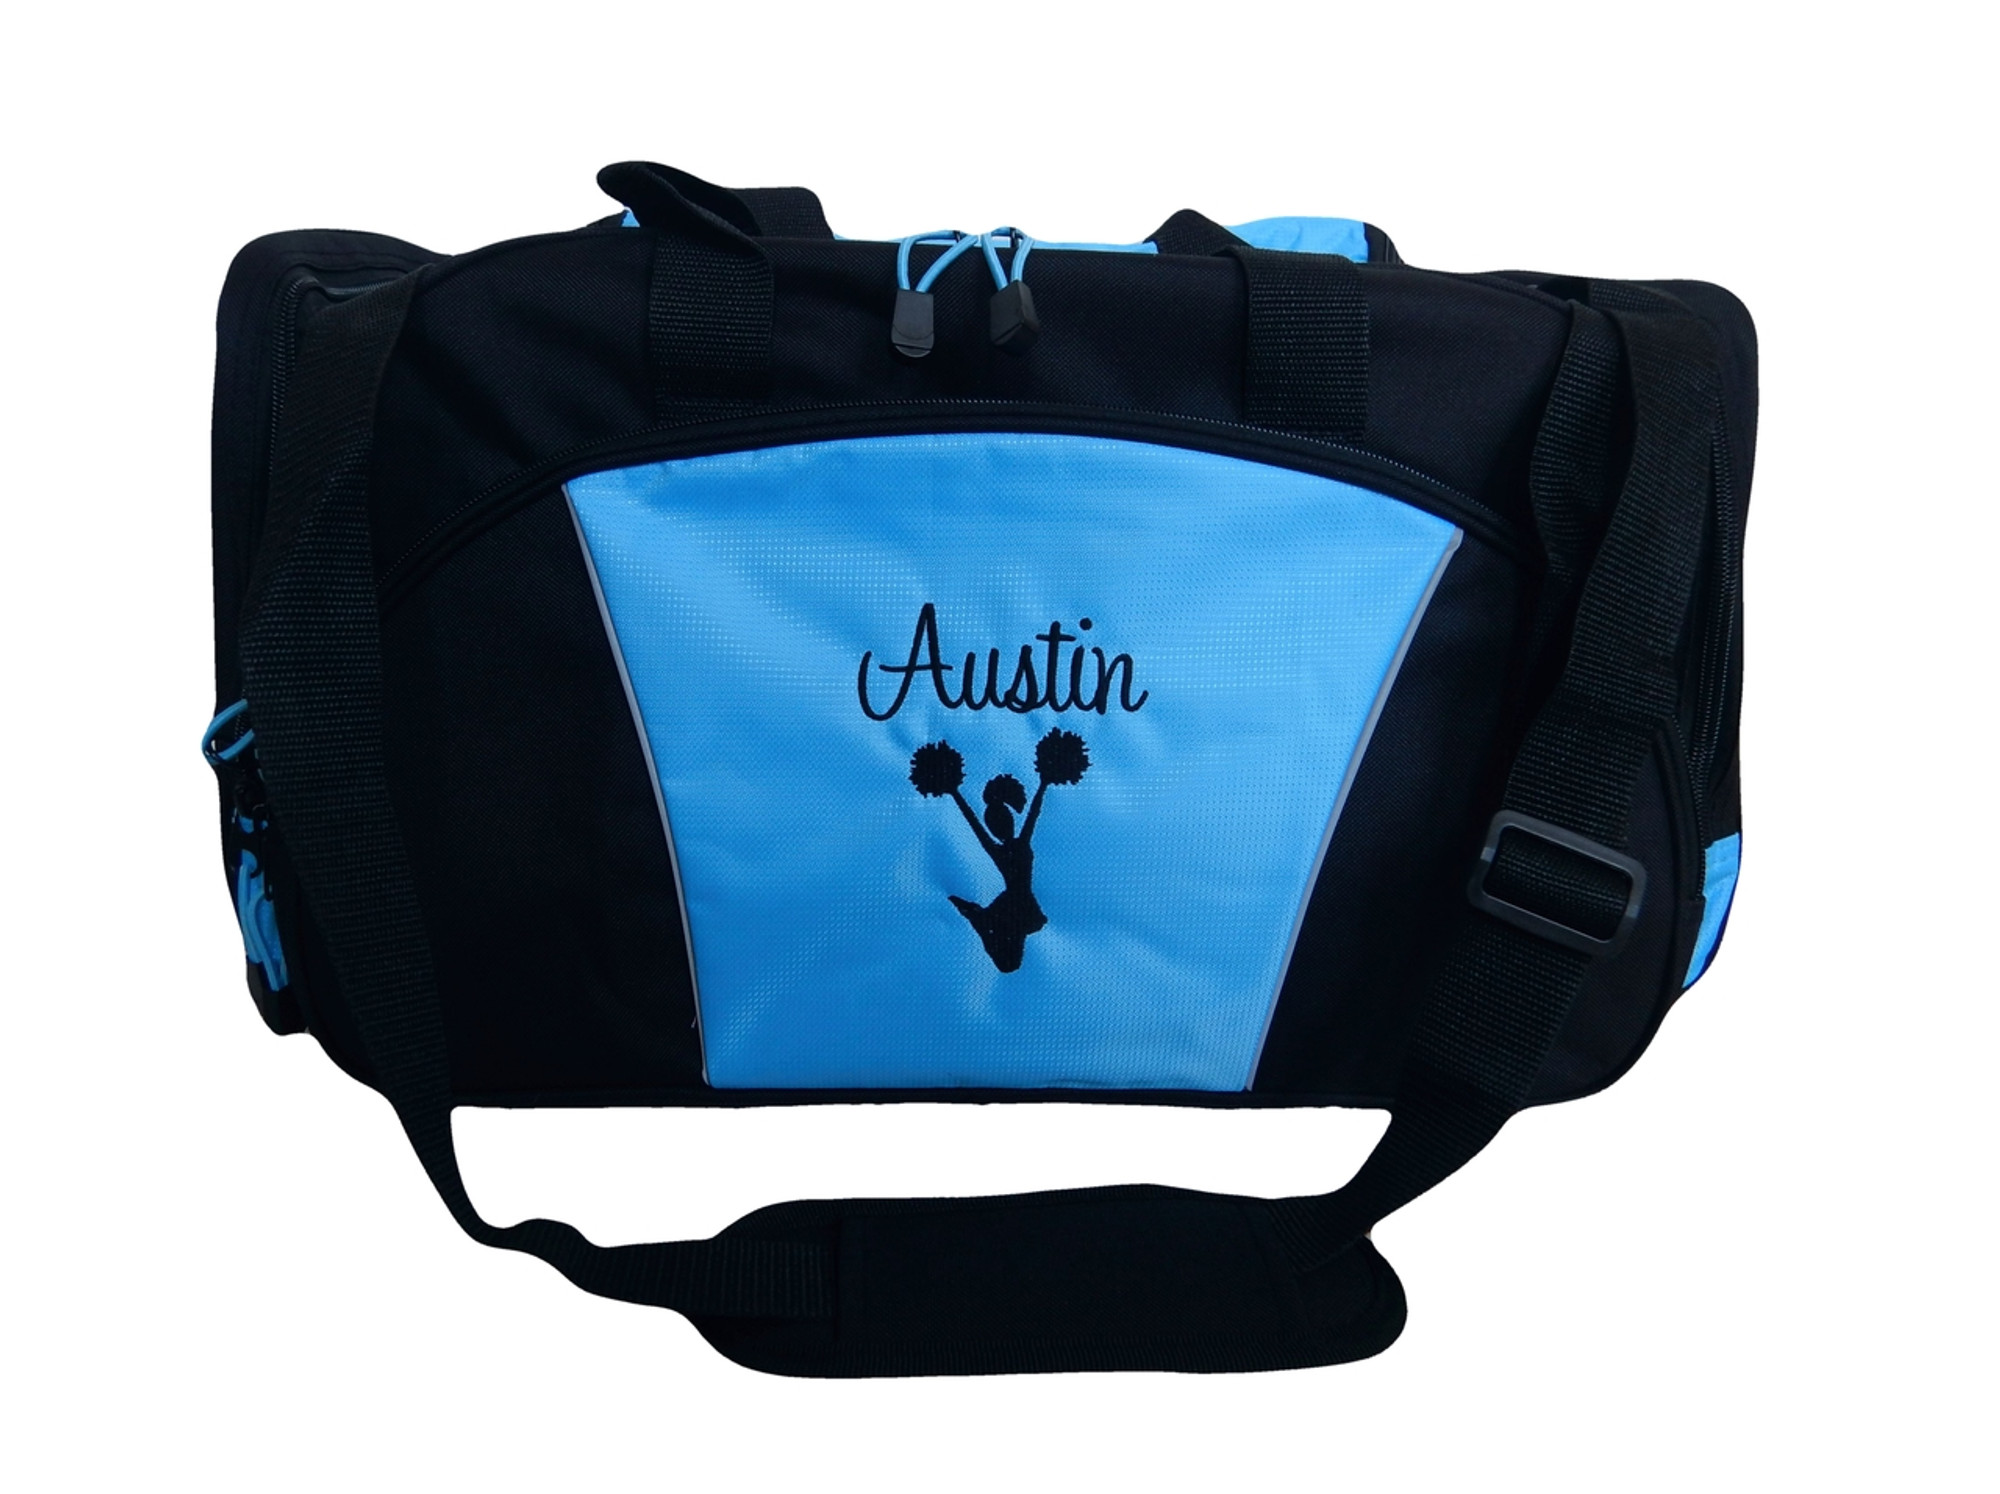 Cheer Cheerleading Poms Dance Silhouette Personalized Embroidered Duffel c16933bf7cf90